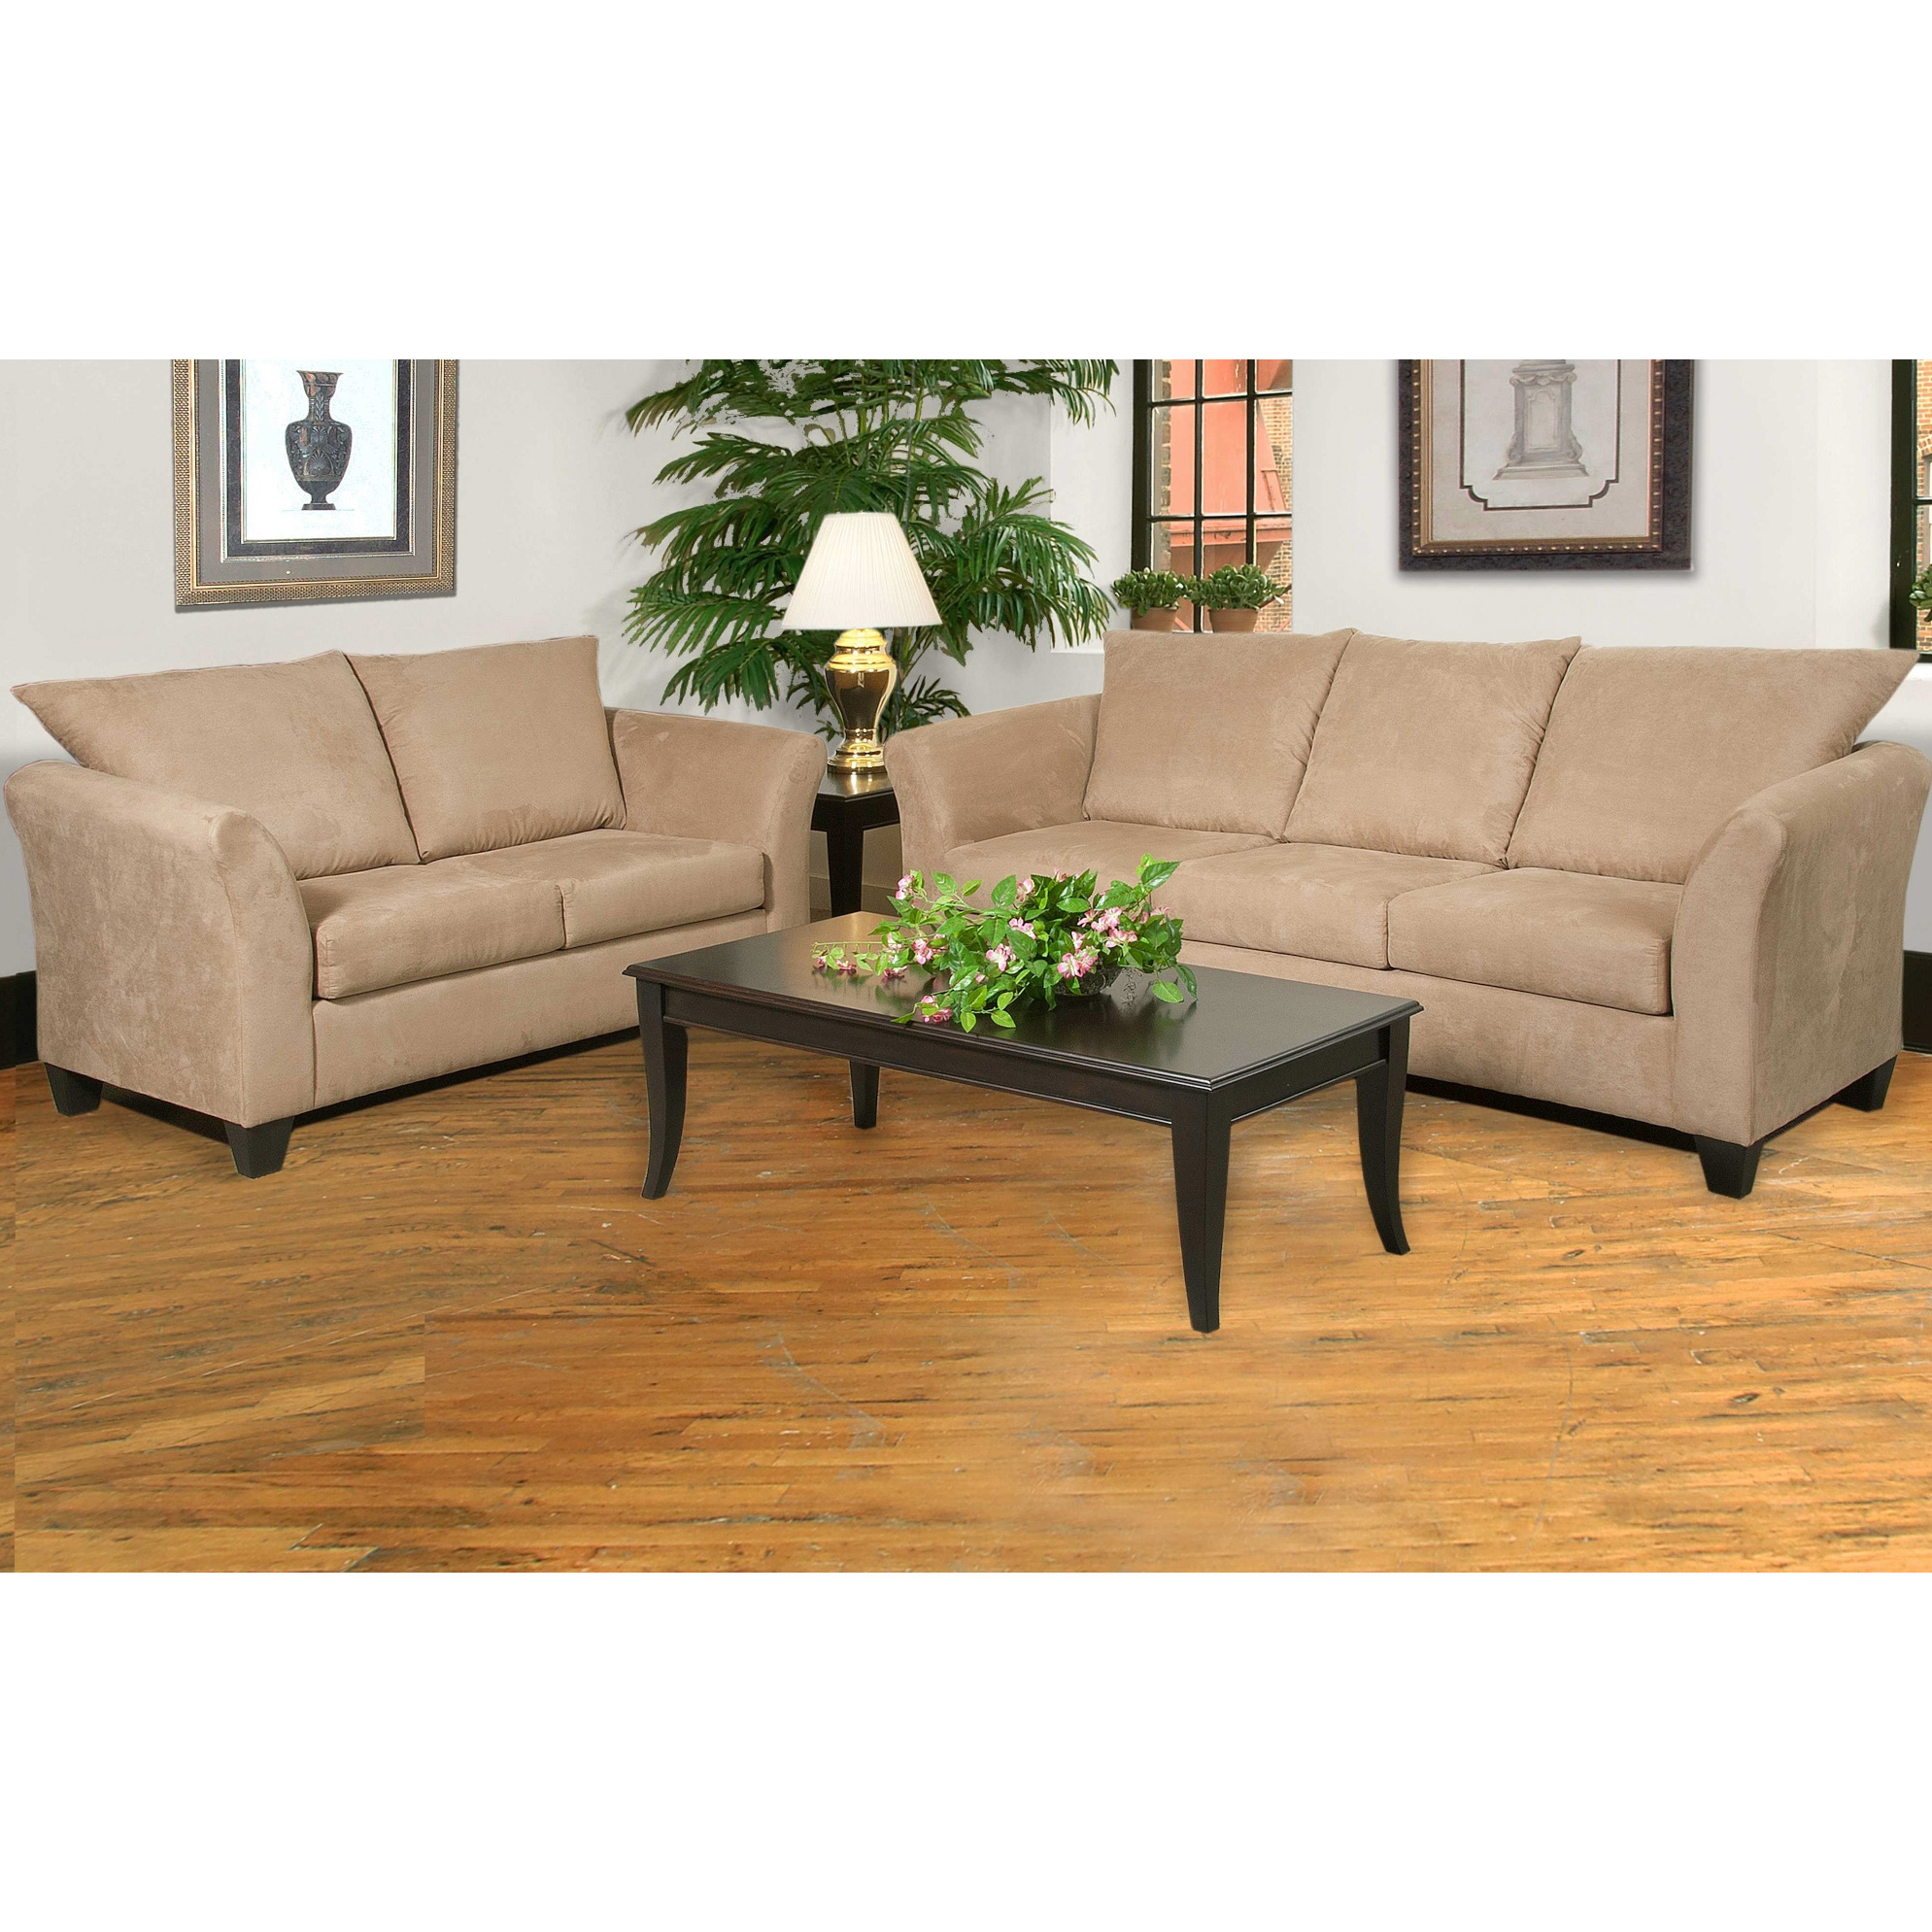 Serta Upholstery By Hughes Furniture | Buster Mocha Loveseat Sofa